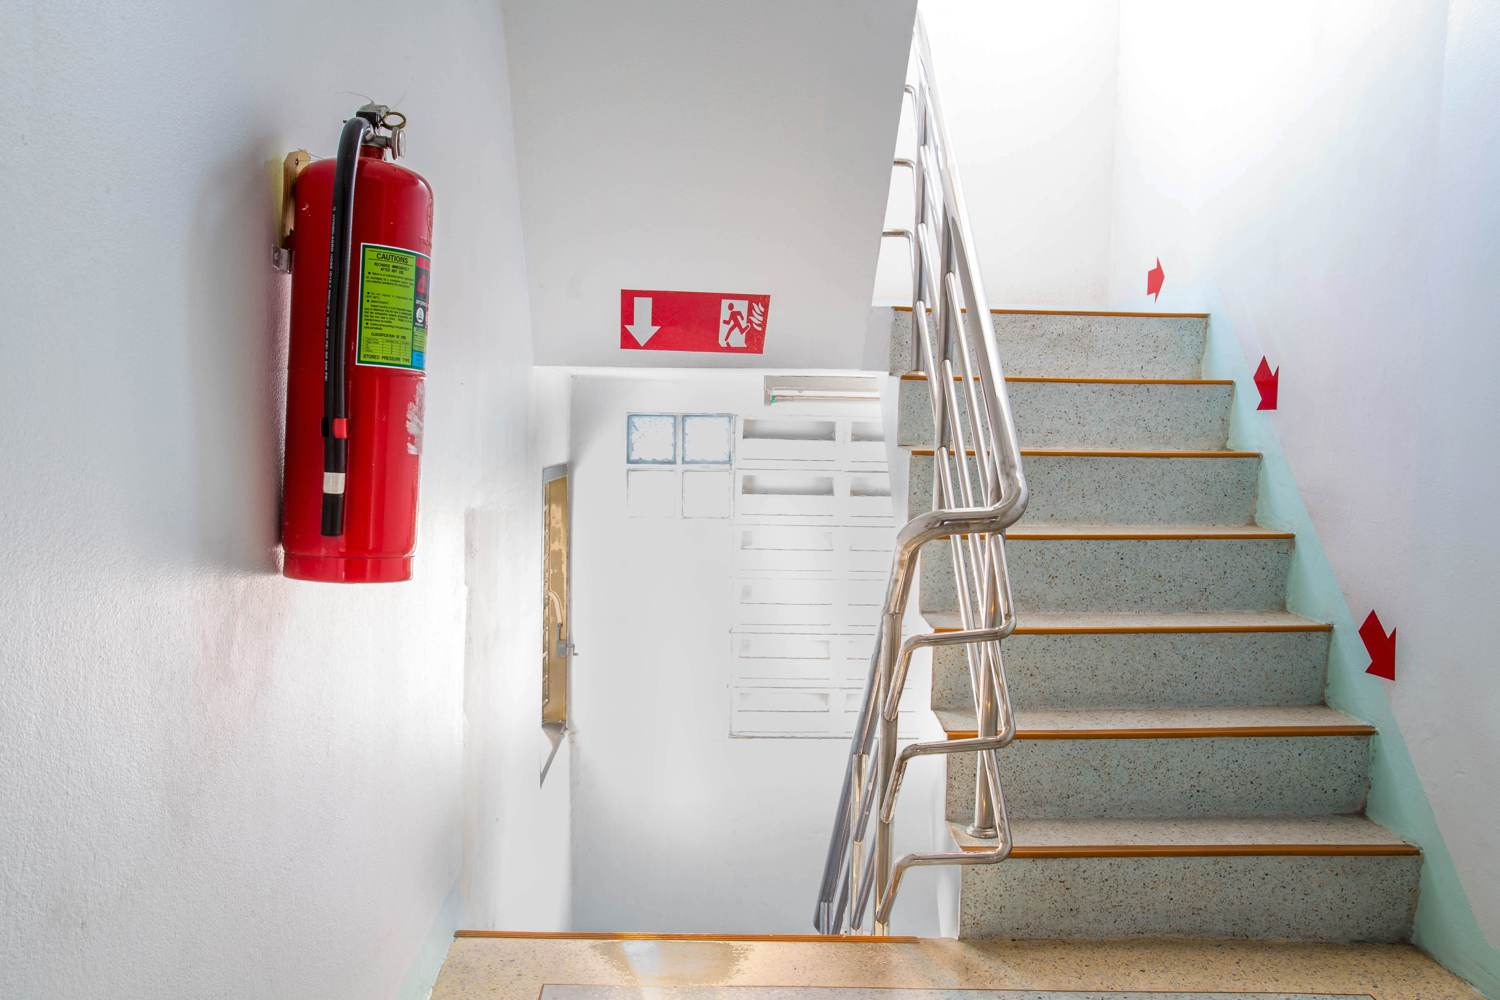 Fire safety in modern building